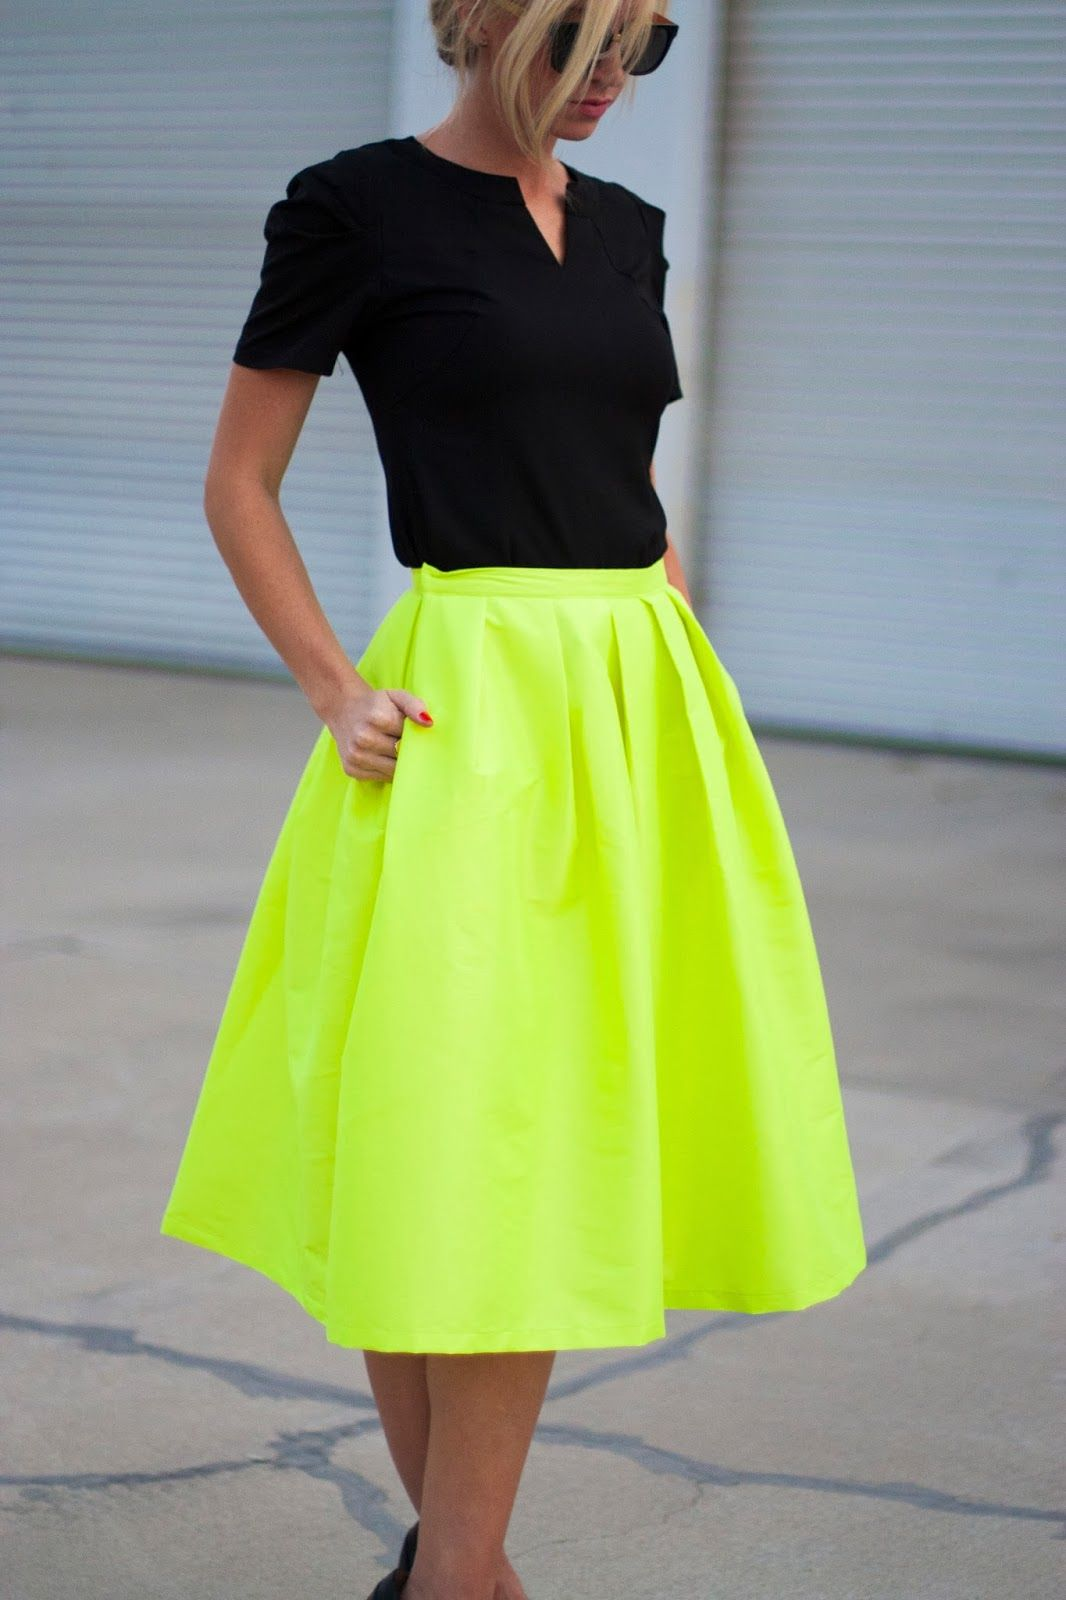 Better in a soft pink or polka dots i donut really love neon